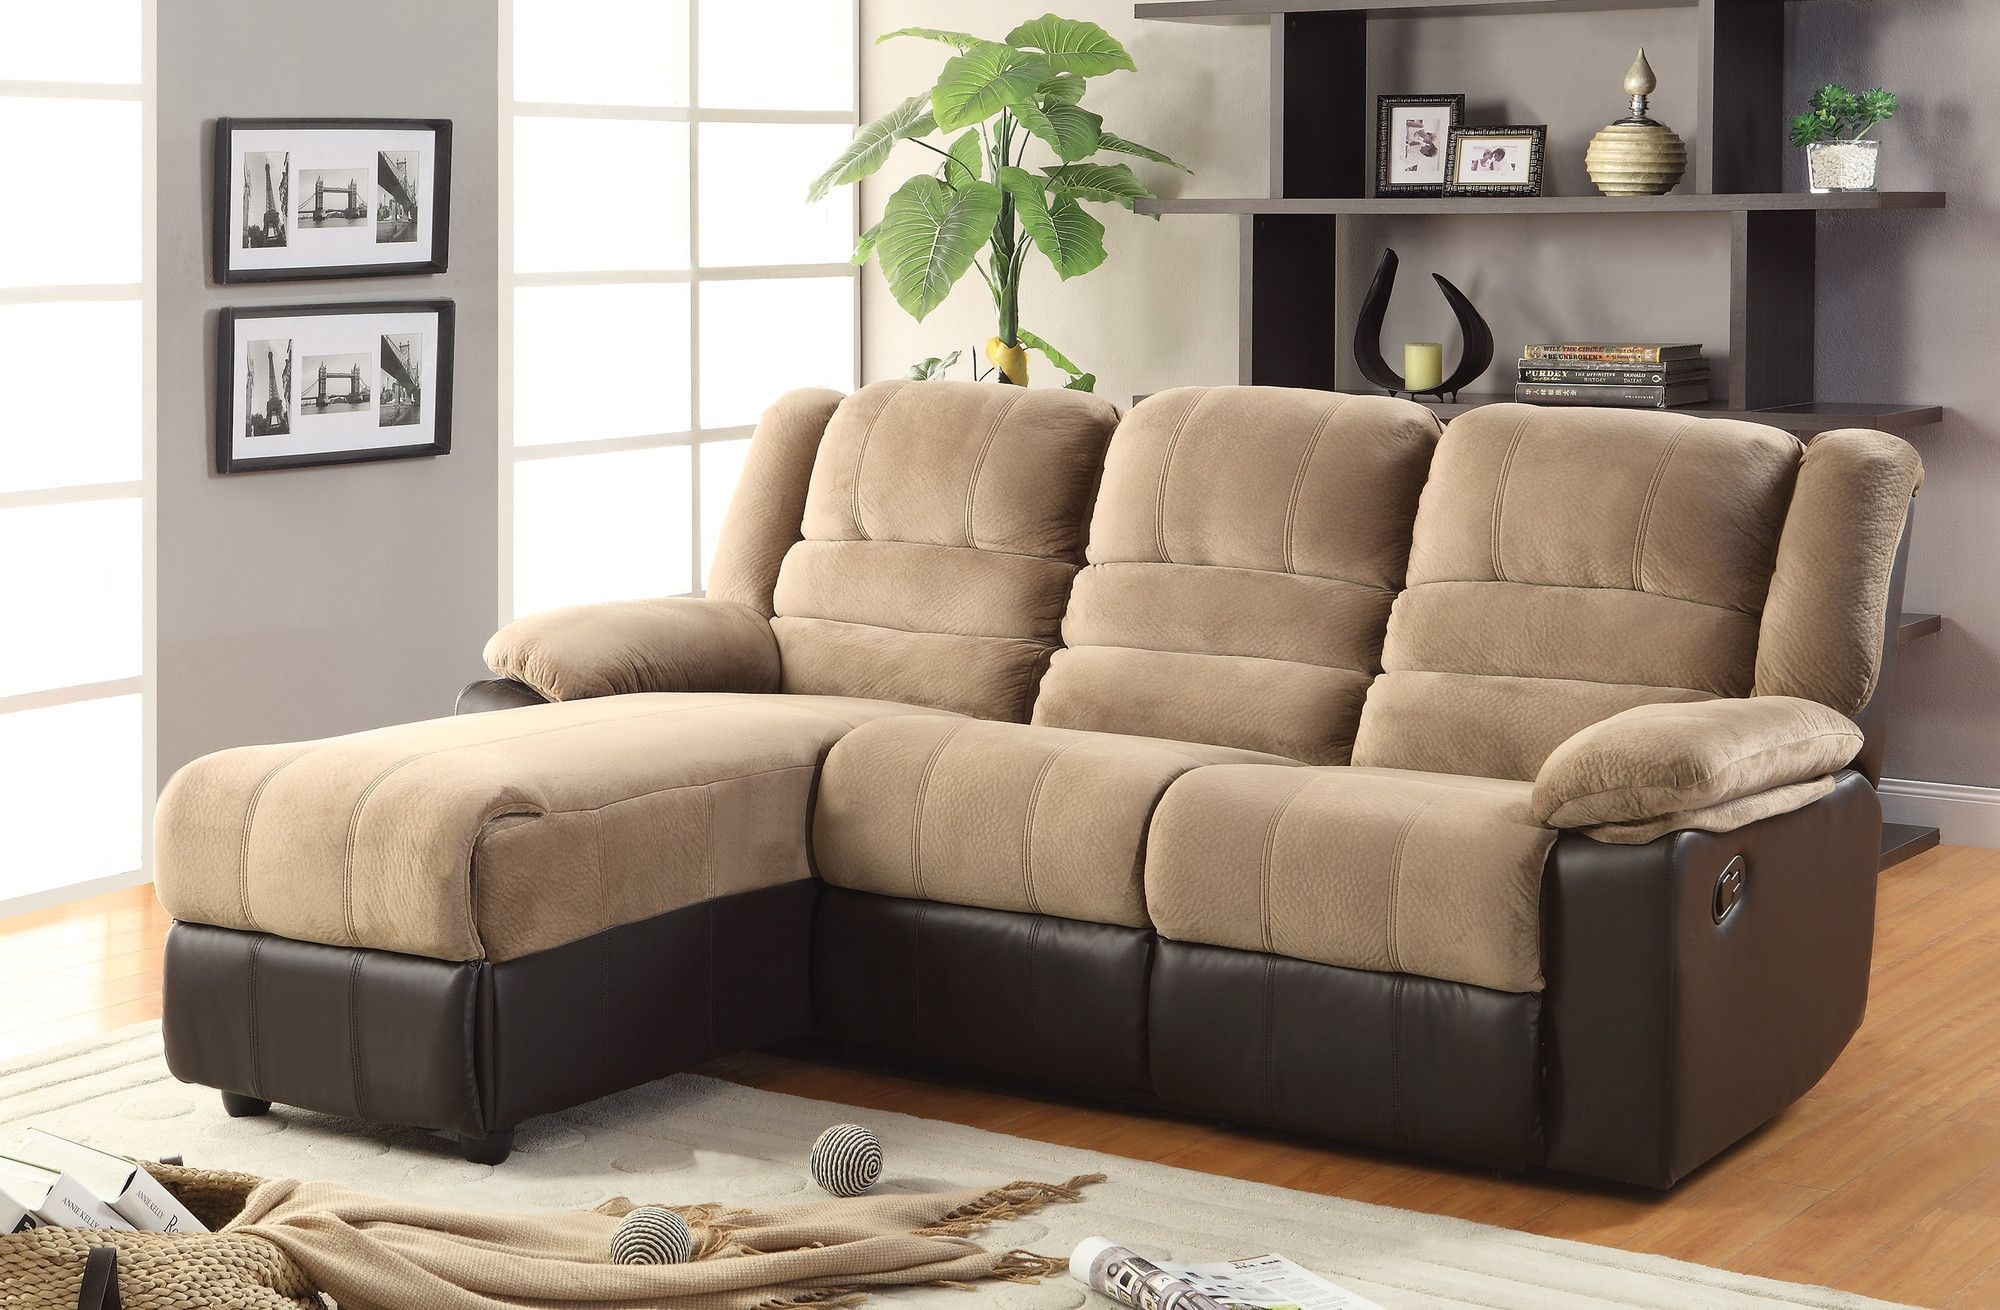 small sectional sofa with recliner visual hunt rh visualhunt com  small sectional sofa with recliner and chaise